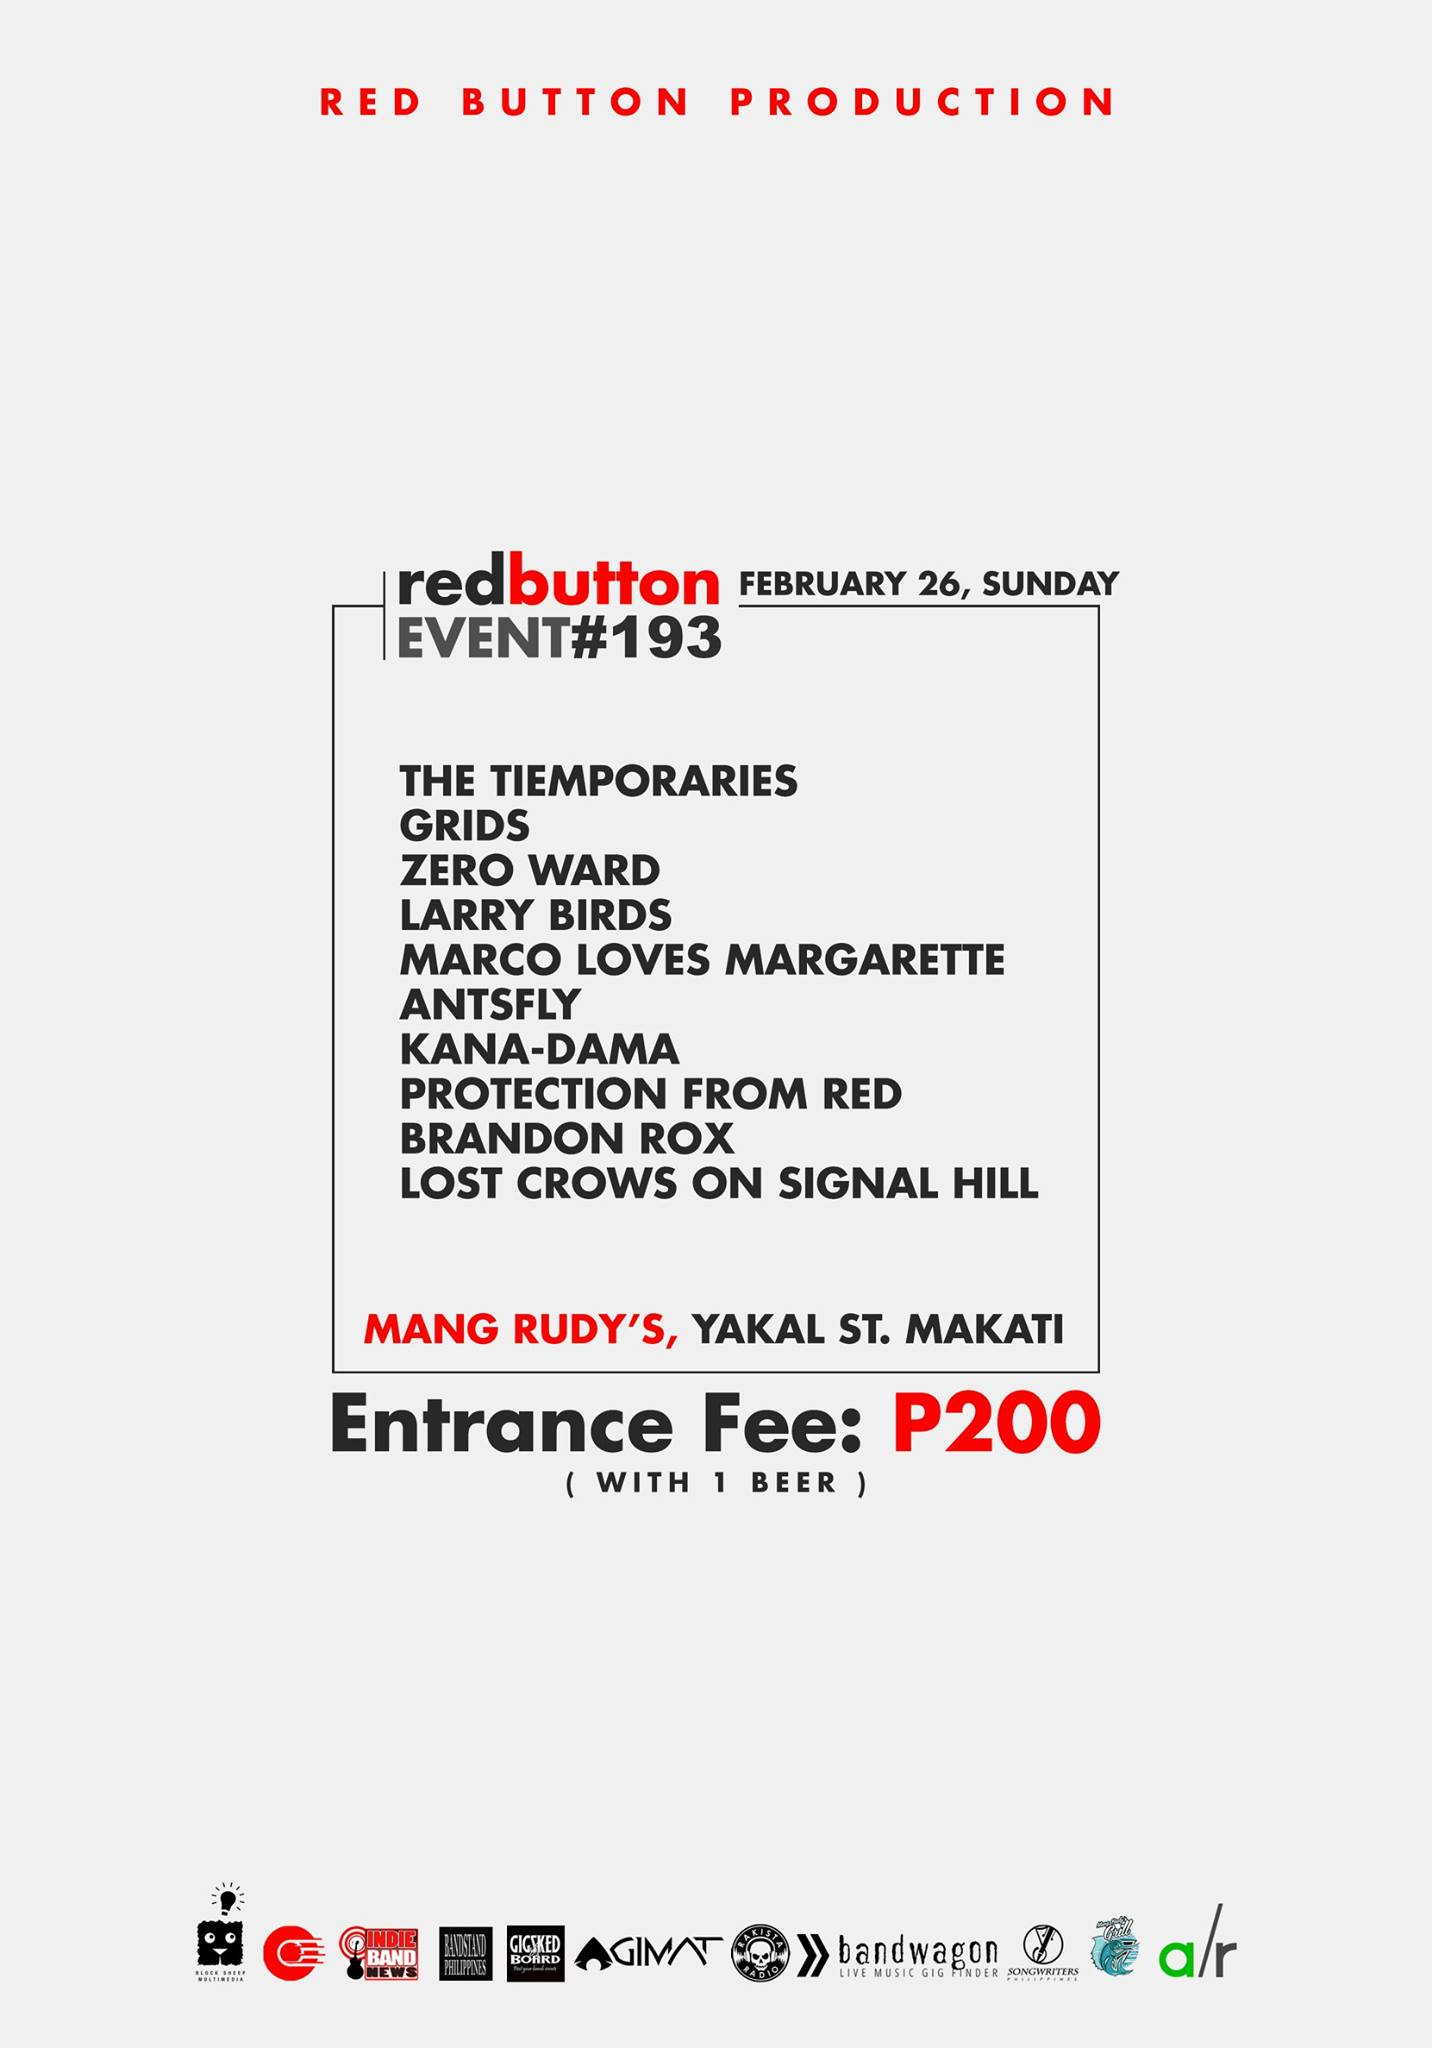 Red Button Production Like This Page · 16 hrs · Red Button Production present Red Button Event #193 February 26, Sunday at Mang Rudy's Tuna Grill & Papaitan, Yakal St. Makati Entrance Fee: P200 with 1 drink. performances by: The Tiemporaries Grids The Overnight Kings Zero Ward Larry Birds Marco Loves Margarette Antsfly Kana-Dama Protection From Red Brandon Rox Lost Crows On Signal Hill Event Link: https://www.facebook.com/events/1448494018554535/ Media Partners: Block Sheep Multimedia Indie Band News Bandstand Philippines Gig Sked Board Agimat: Sining at Kulturang Pinoy Rakista Radio Bandwagon Philippines Songwriters Philippines Adobo Radio — at Mang Rudy's Tuna Grill And Papaitan.